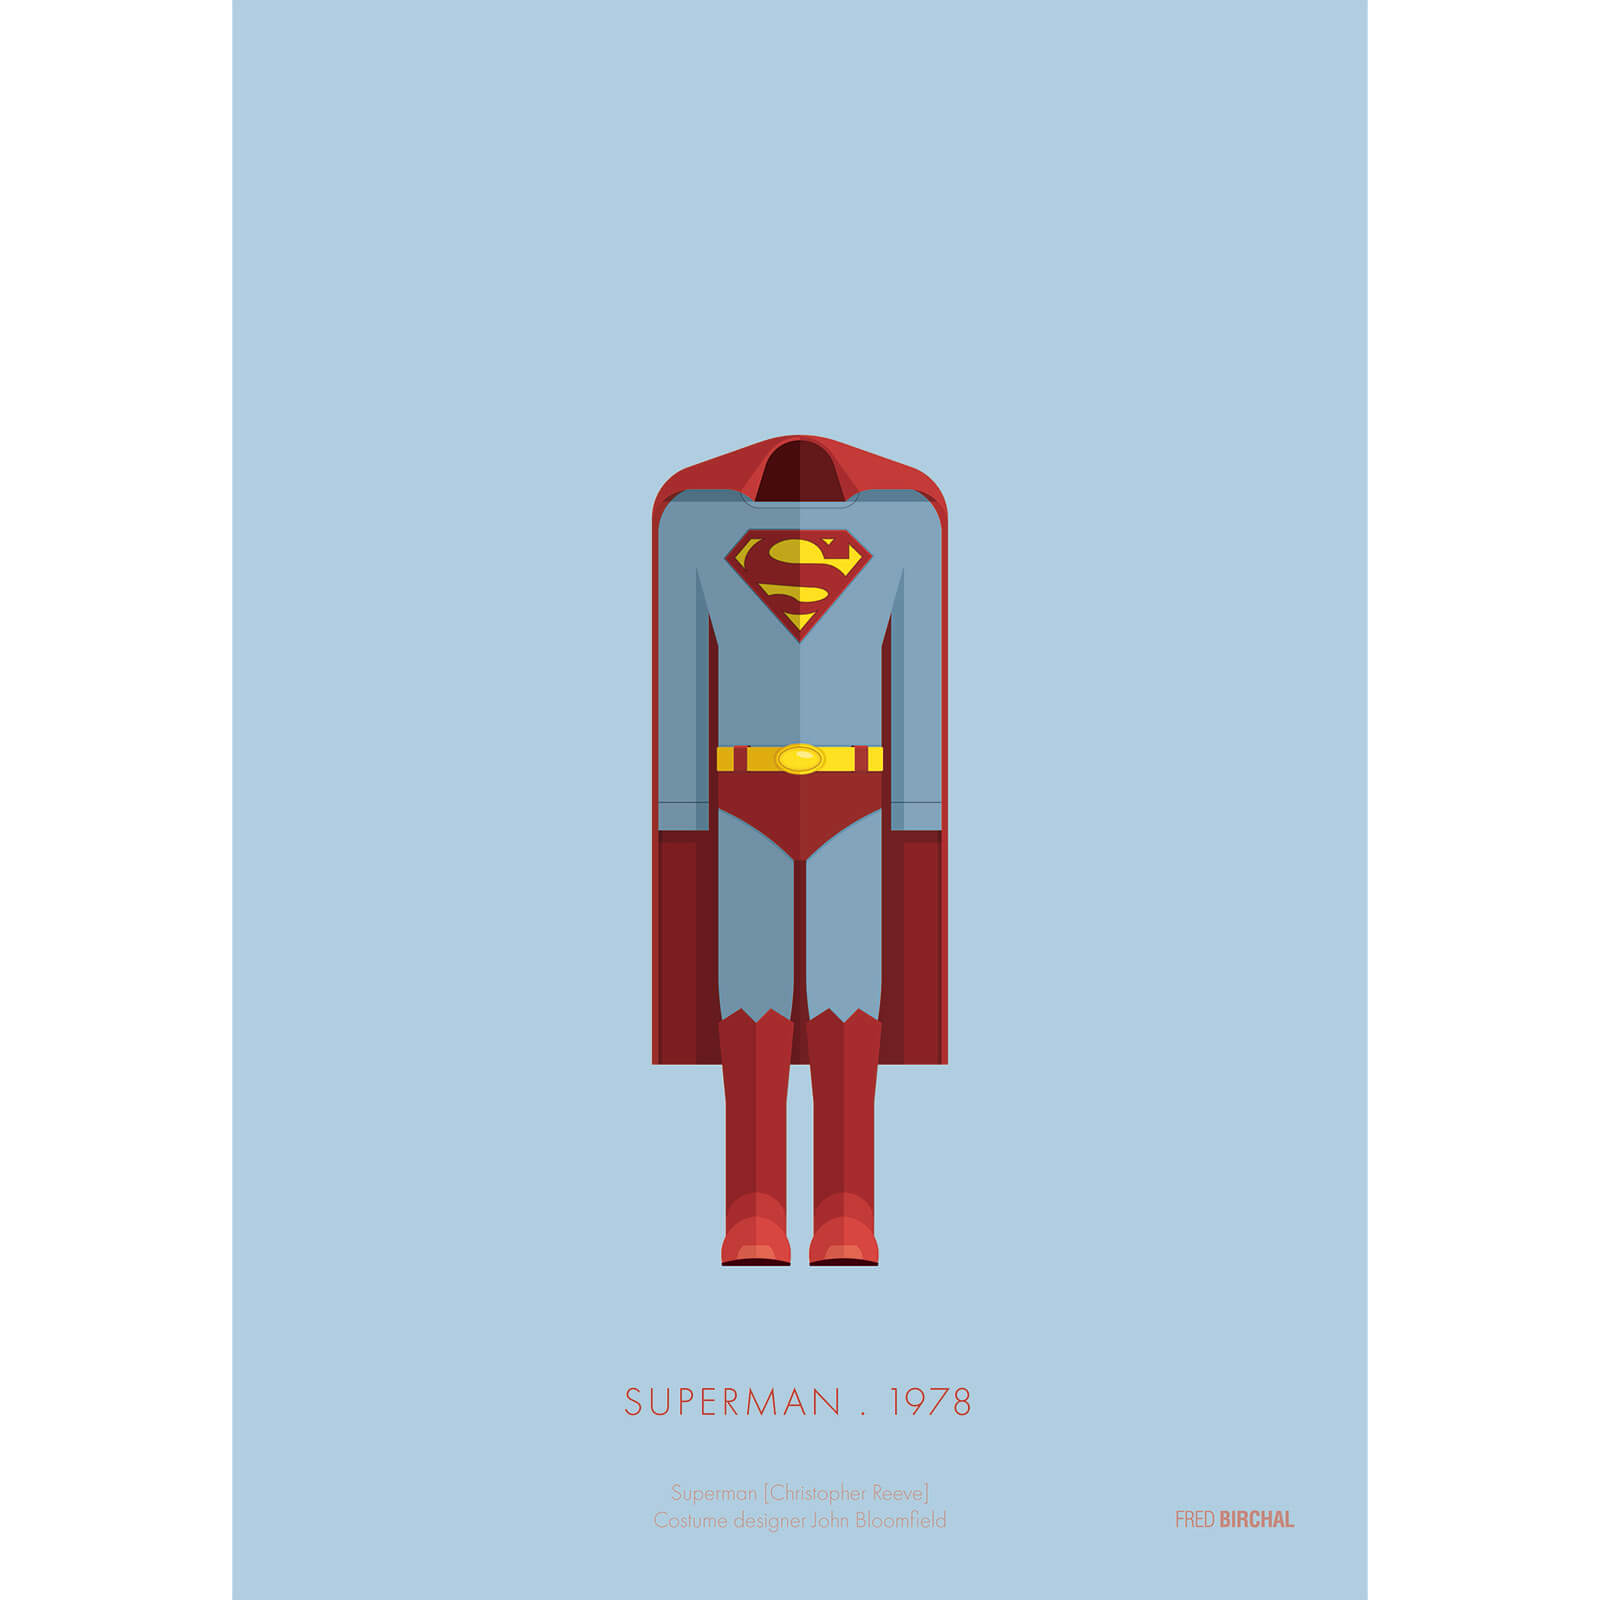 Superman Costume Art Print - 14 x 11